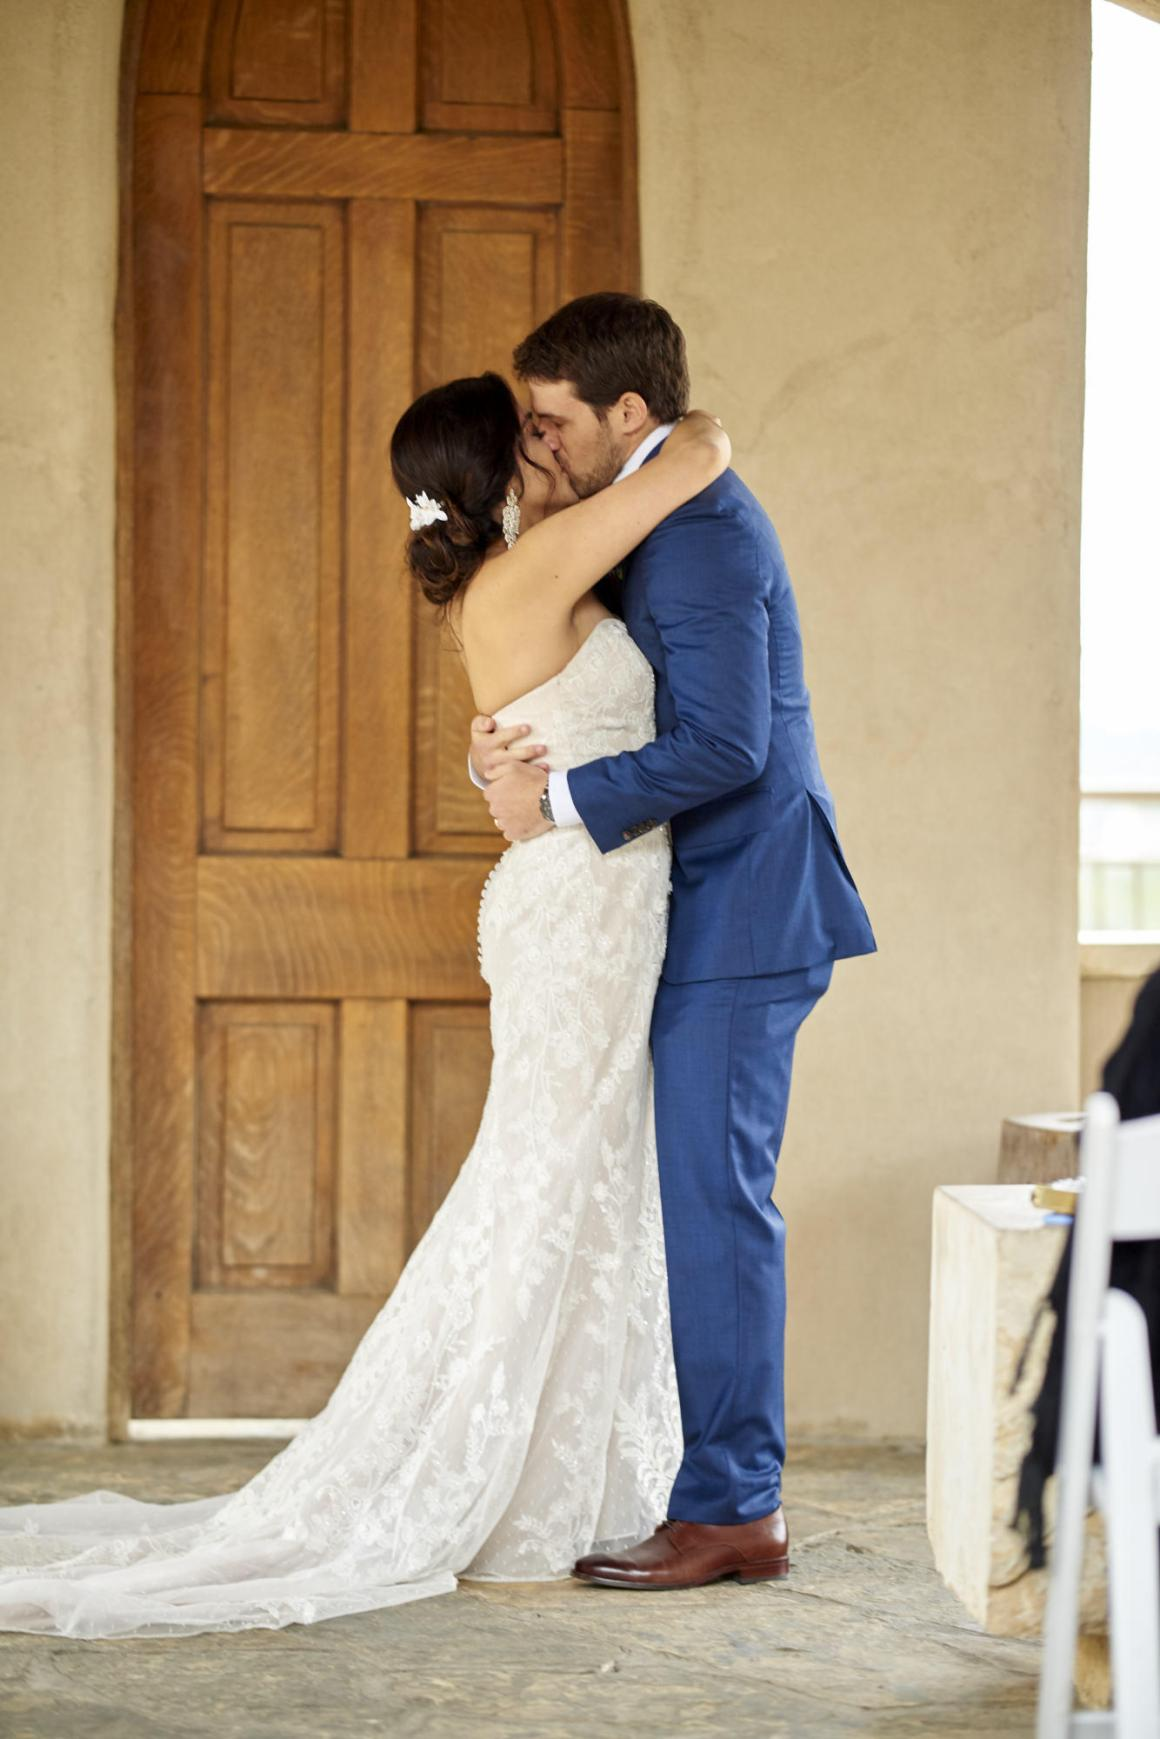 The bride and groom's first kiss after their wedding ceremony.